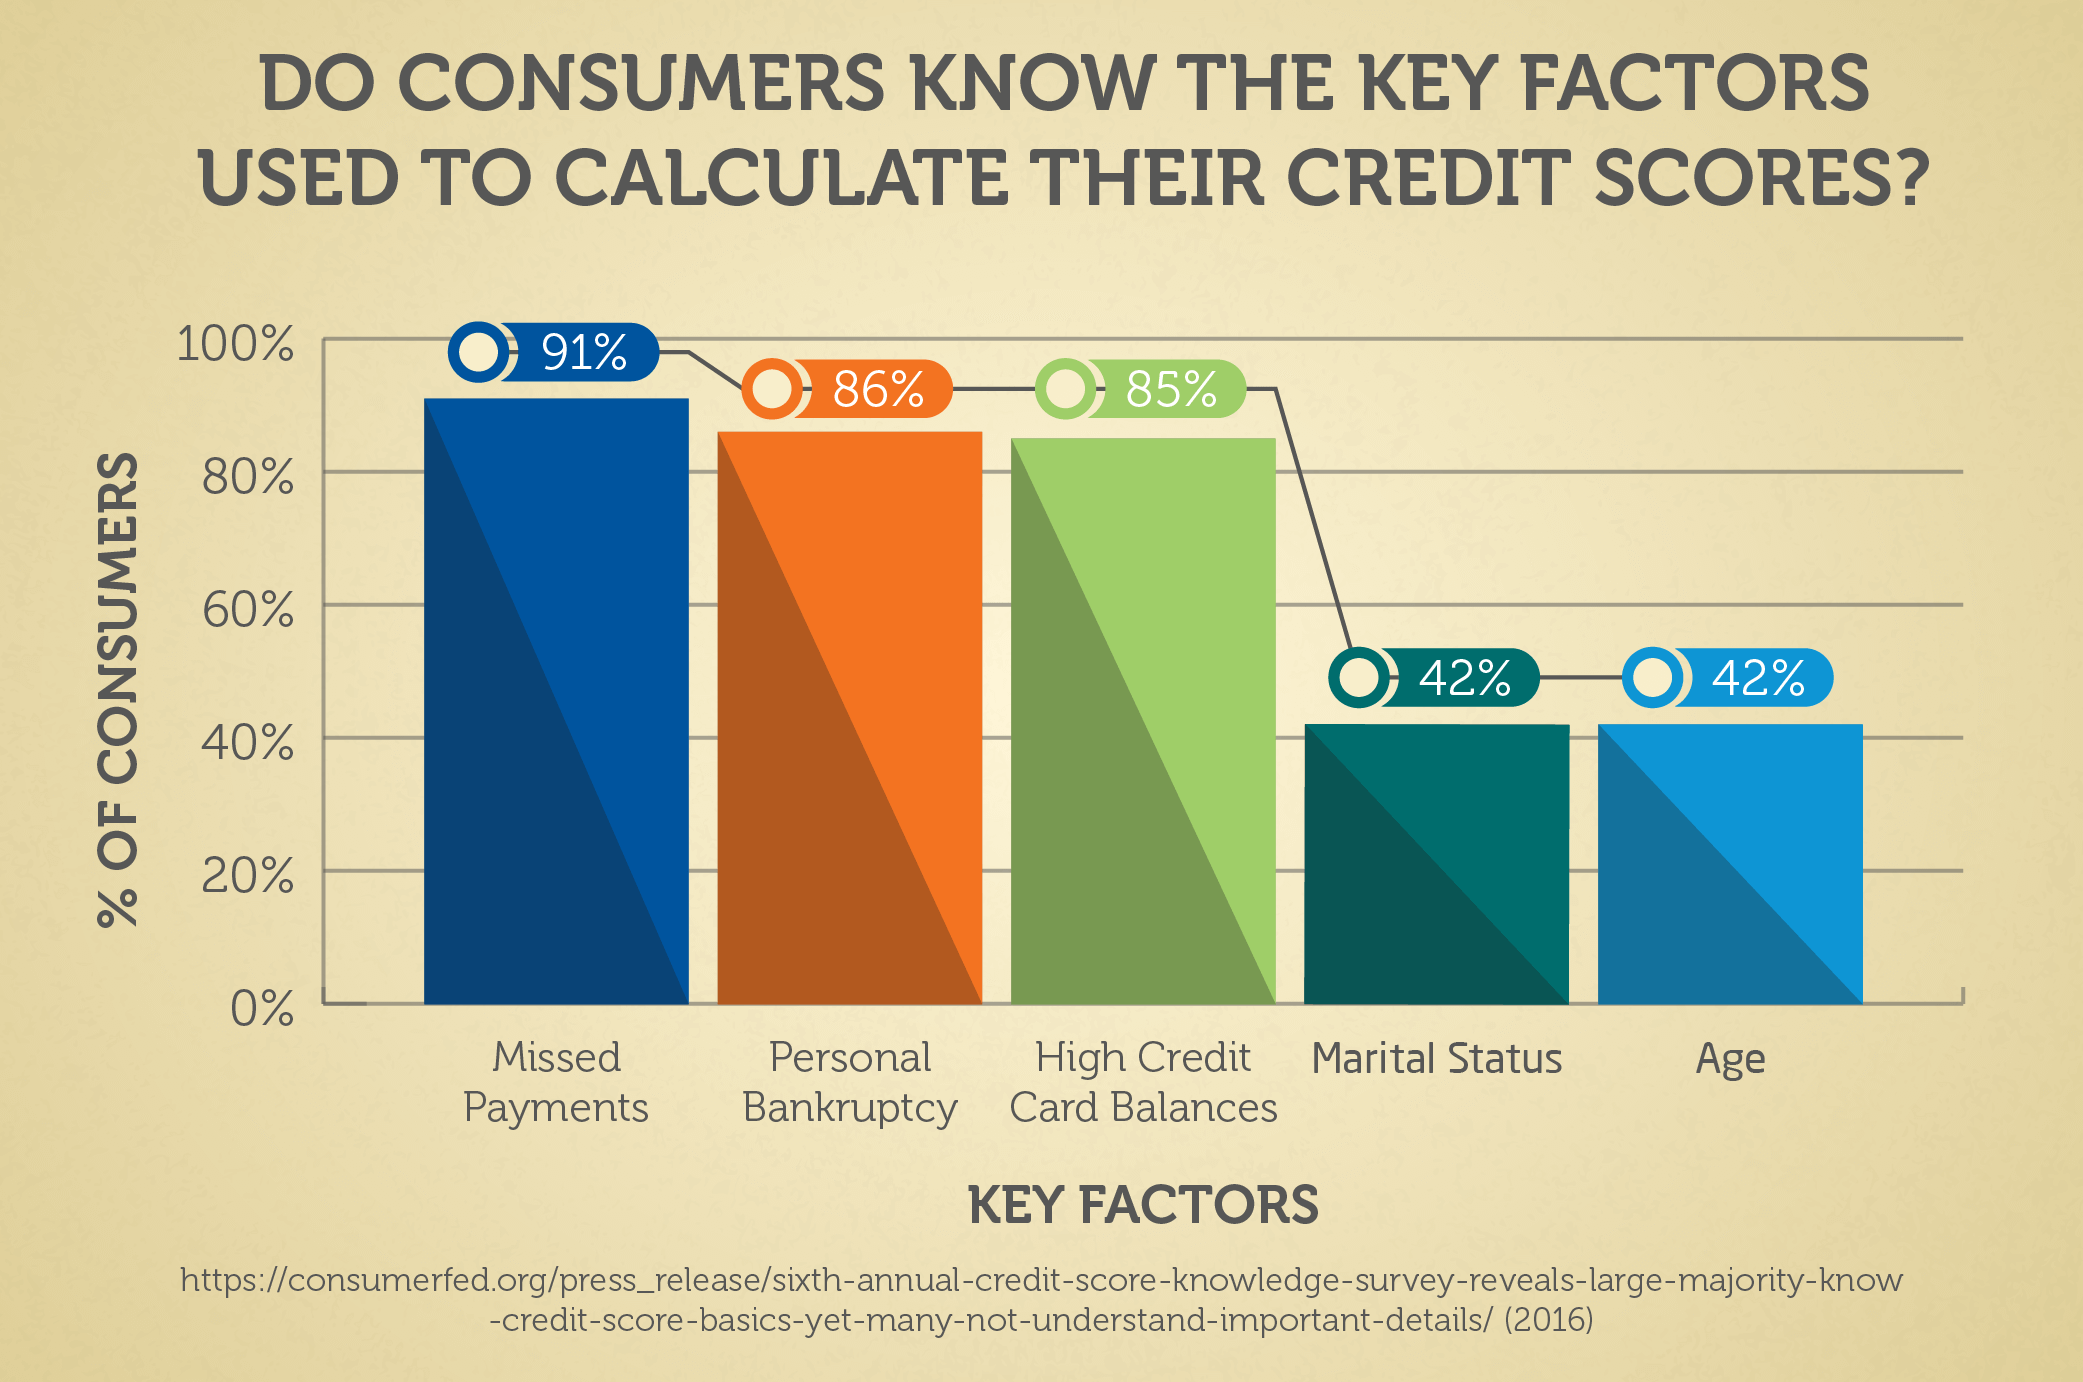 Do Consumers Know the Key Factors Used to Calculate Their Credit Scores?